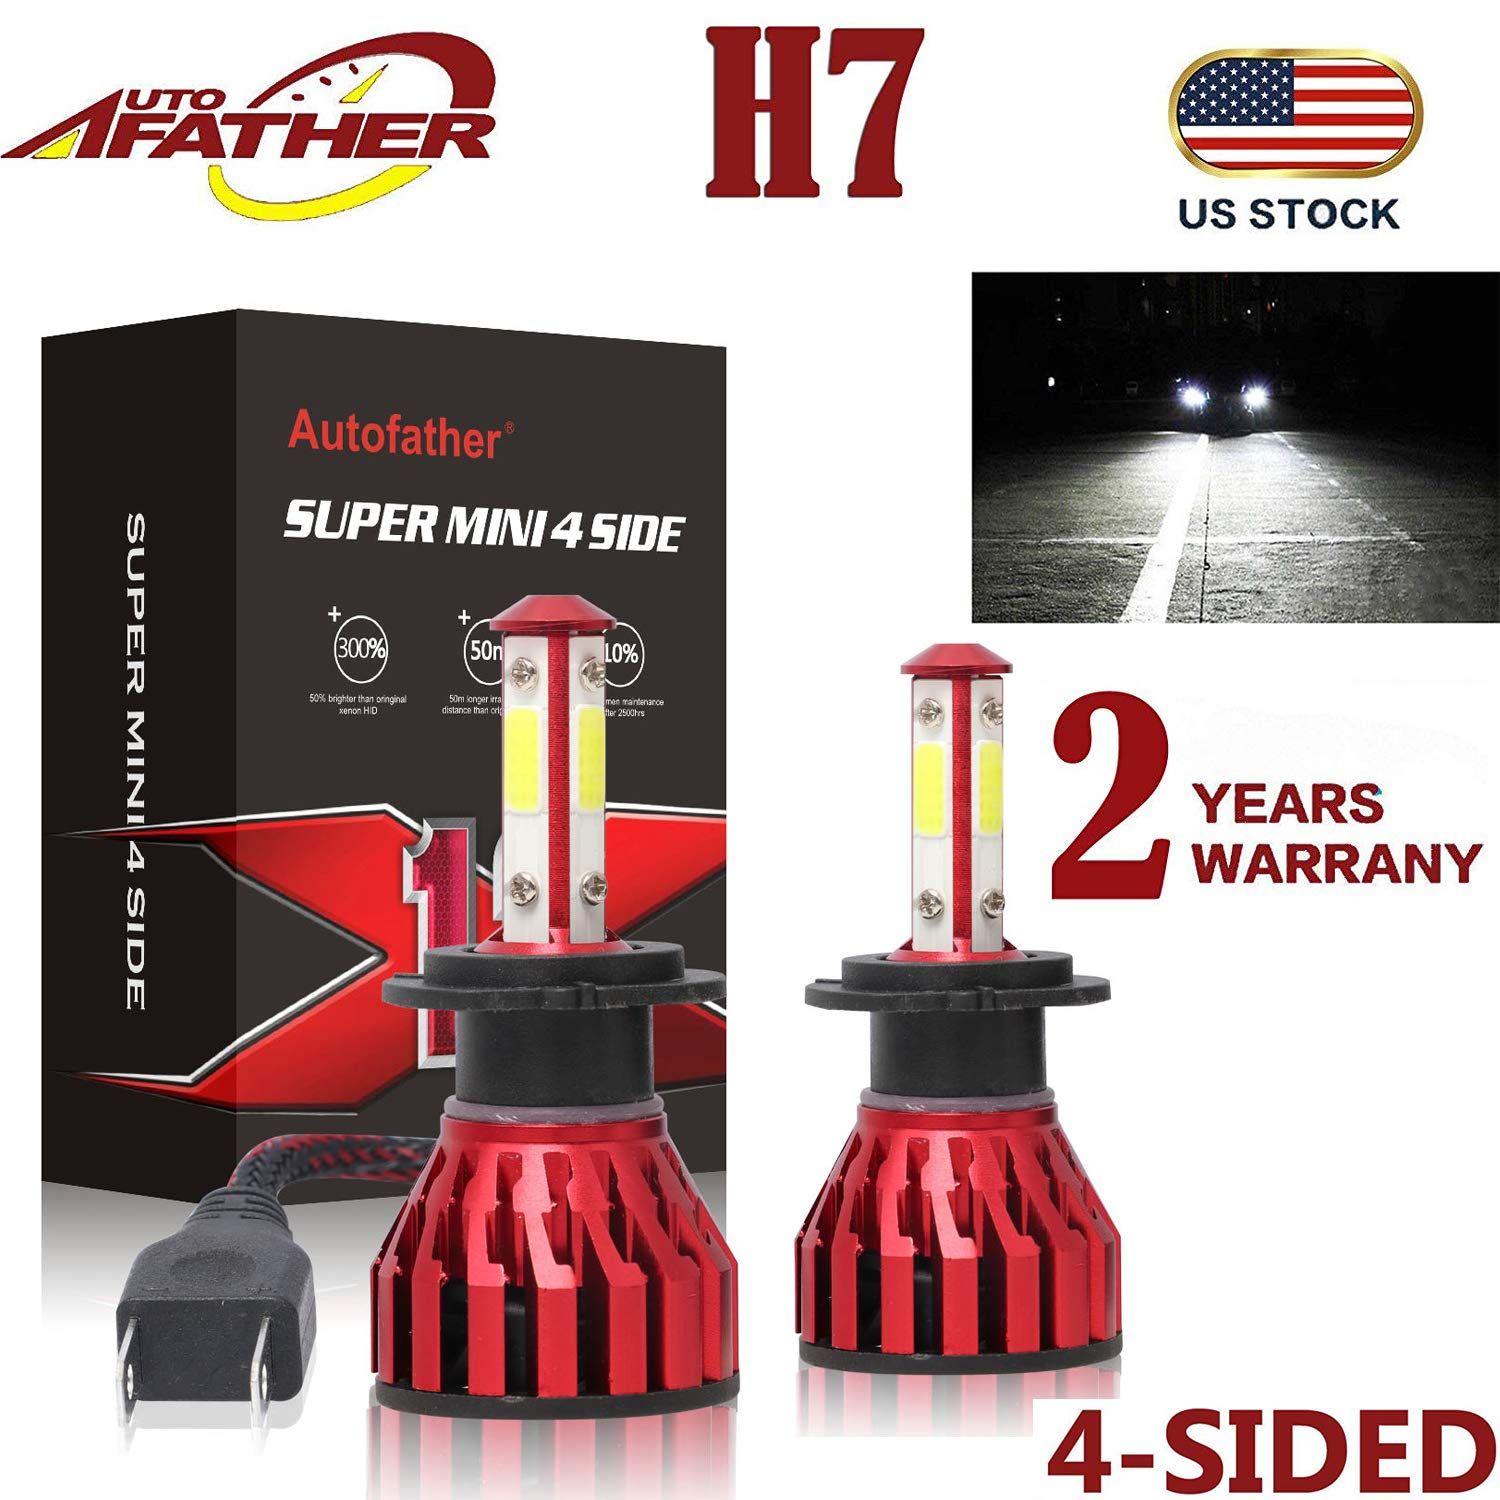 H7 LED Headlight Bulb, 40W 6000K(White Light) 20000LM Extremely Brigh  High/Low Beam/Fog Light Bulbs Conversion Kits Car Driving Lamps Replacement  with